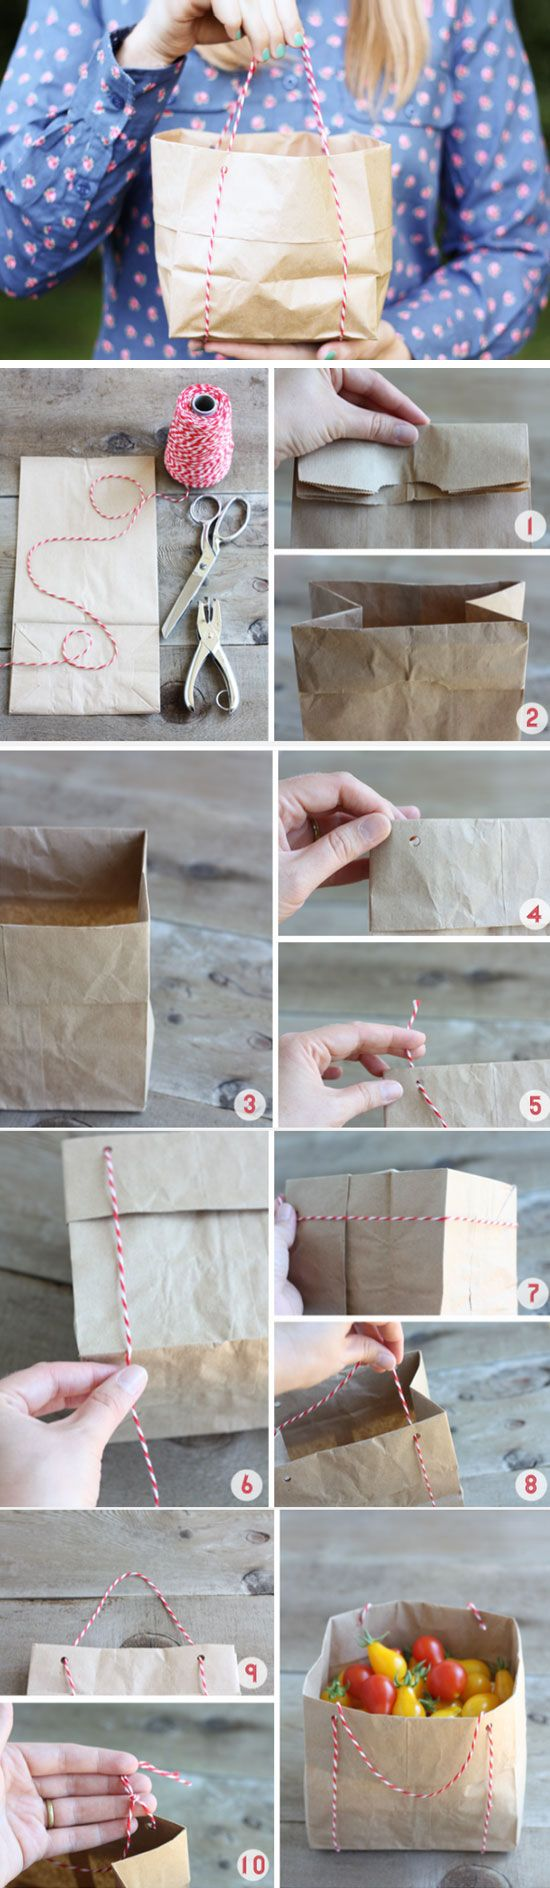 Paper Bag Totes | Click Pic for 18 Easy DIY Easter Basket Ideas for Kids | Homemade Easter Baskets for Kids to Make